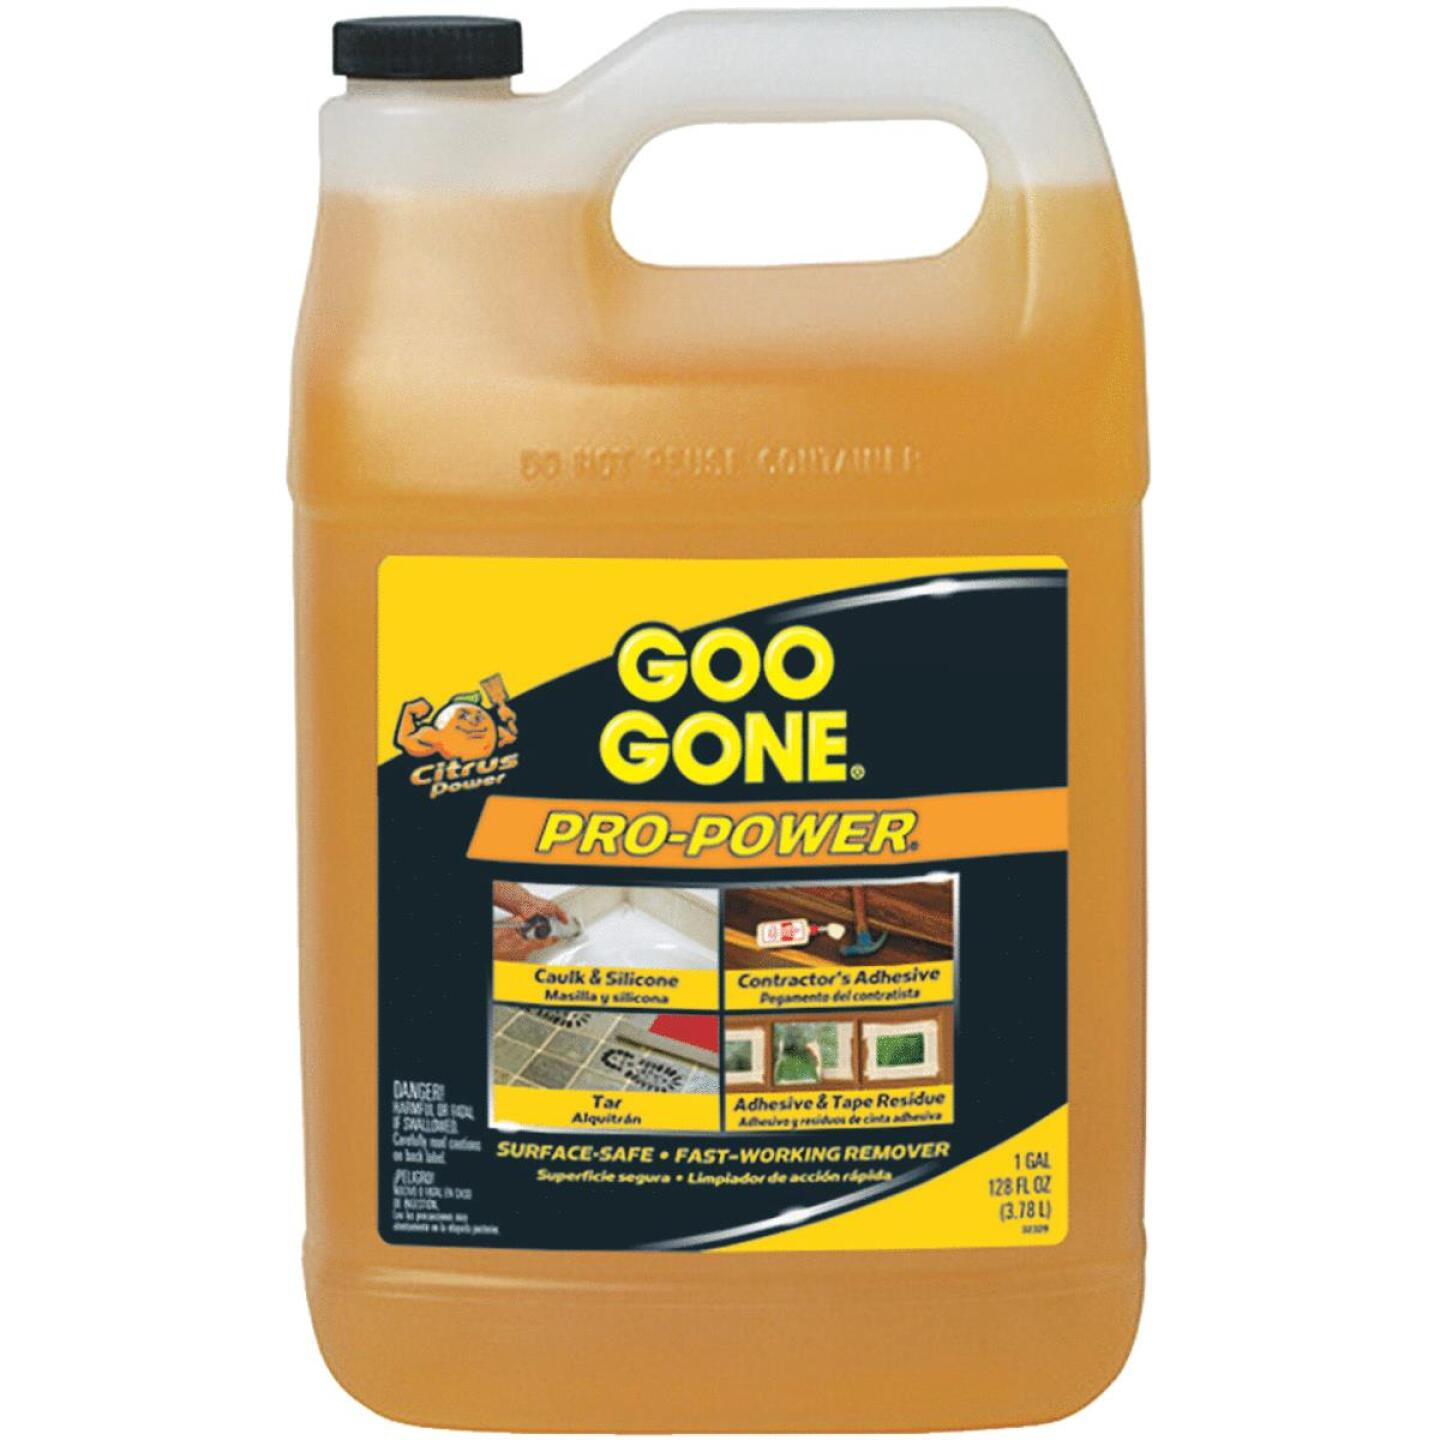 Goo Gone 1 Gal. Pro-Power Adhesive Remover Image 352